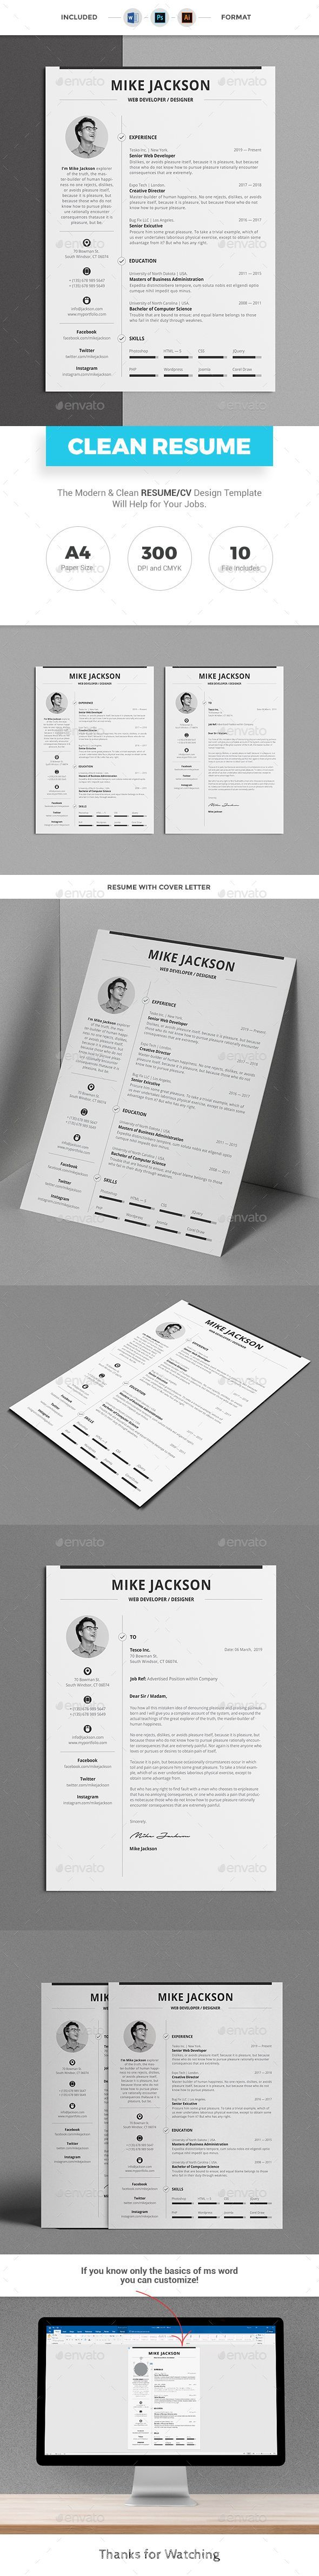 Resume Cv Templates Free Download%0A Professional Resume Template Word